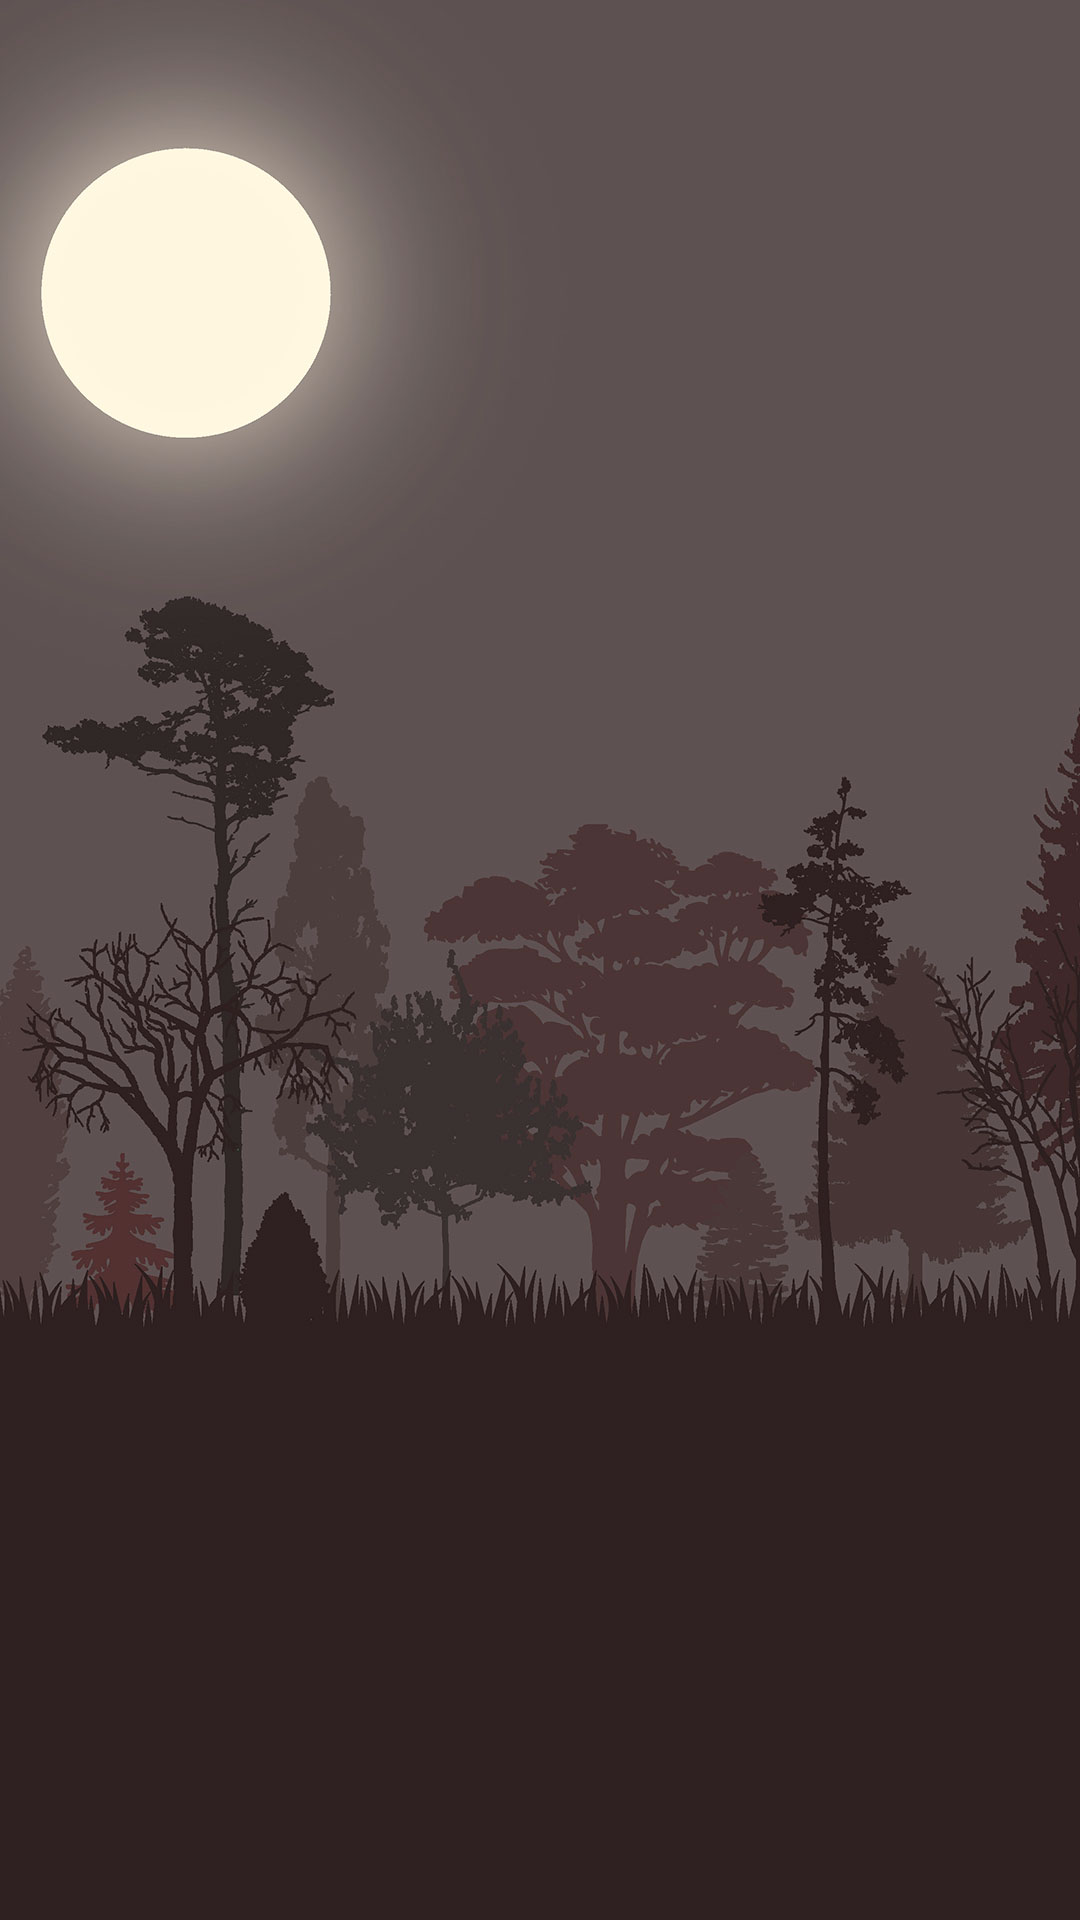 iPhone wallpaper drawing forest Les 3Wallpapers iPhone du jour (17/04/2018)